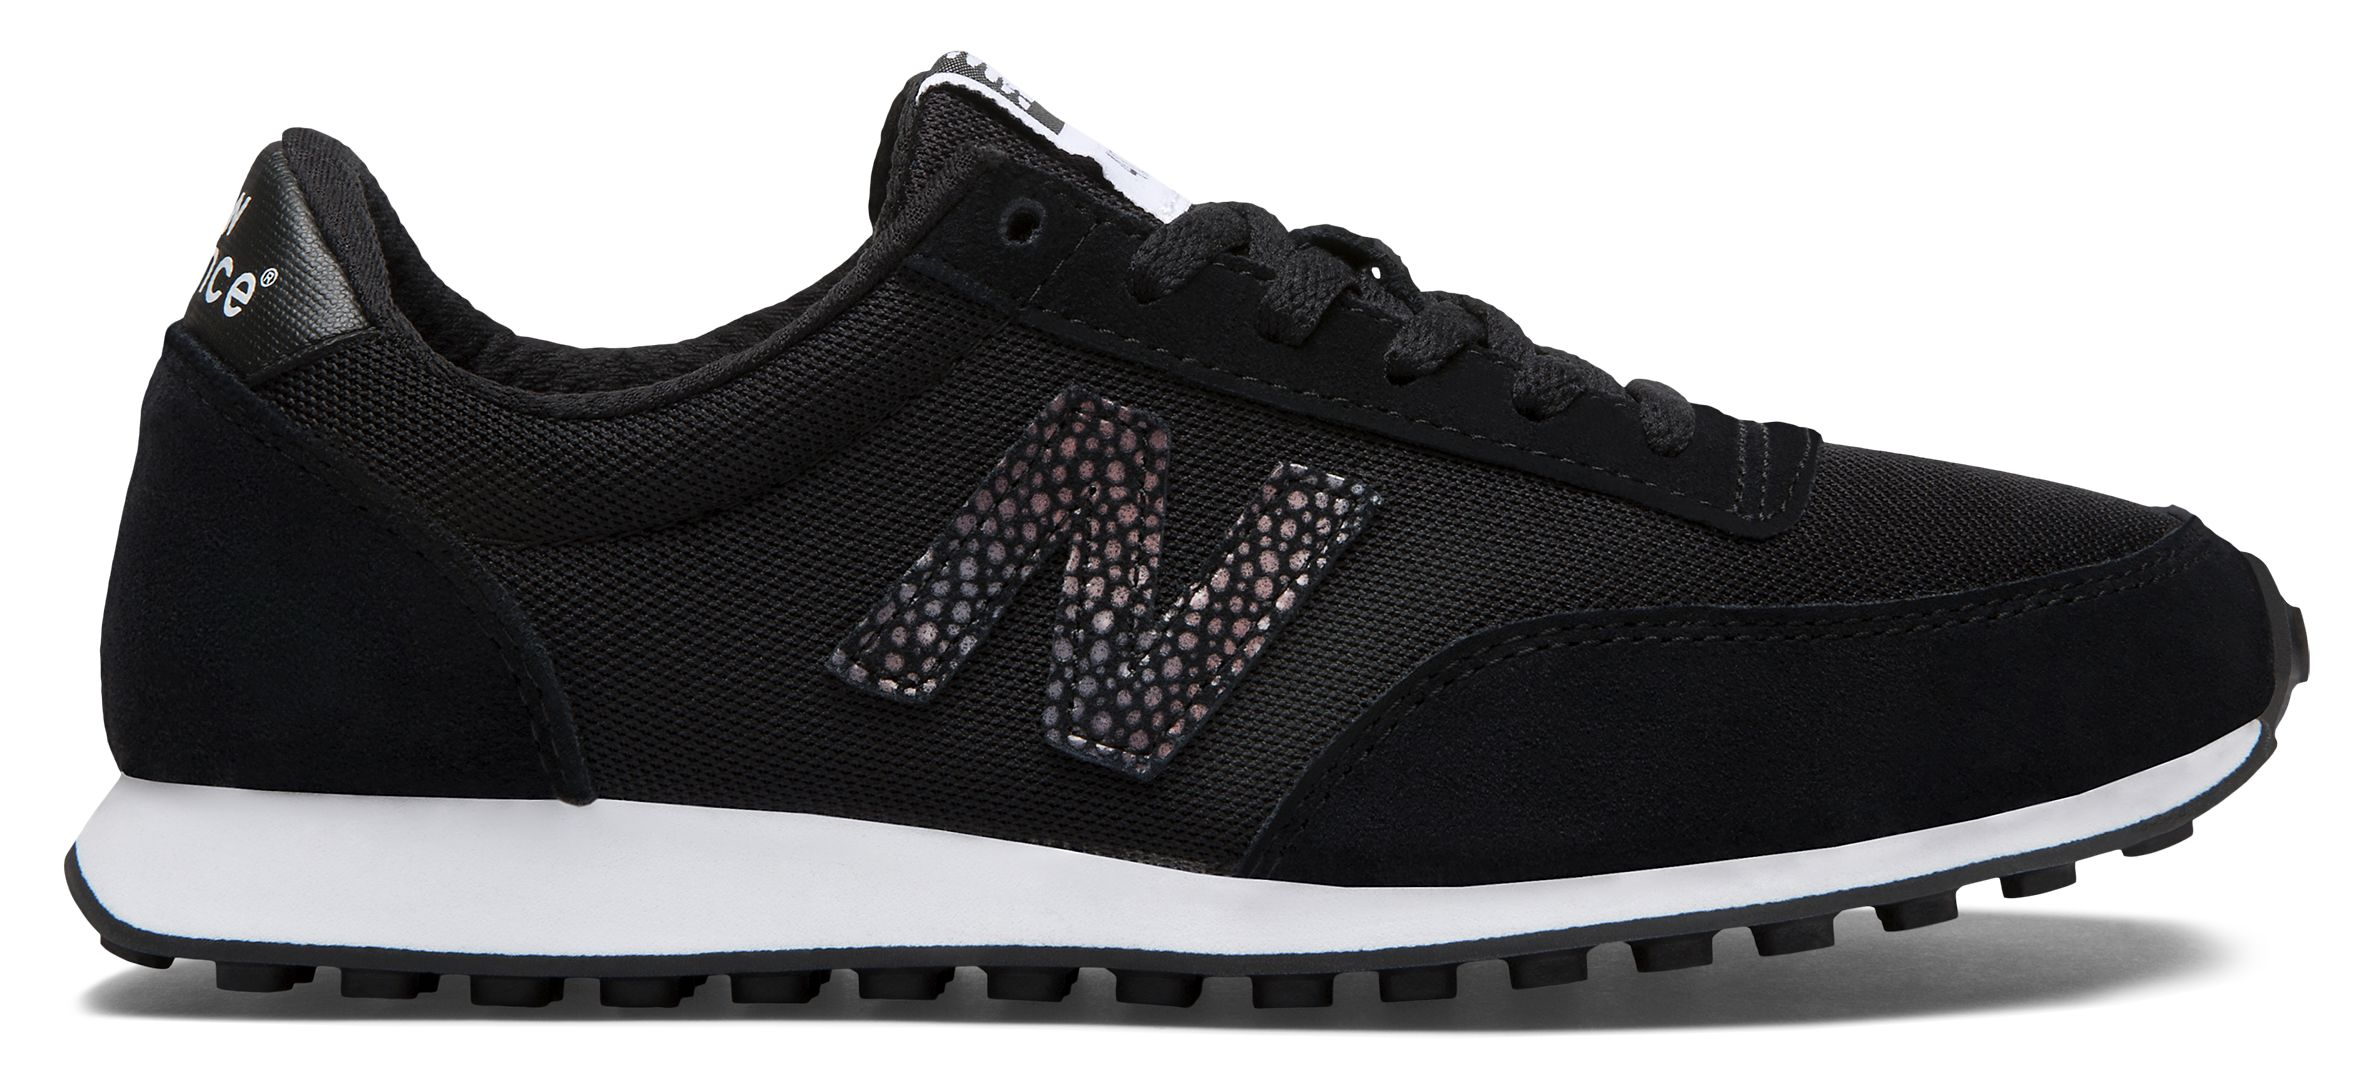 NB 410 70s Running Suede, Black with White